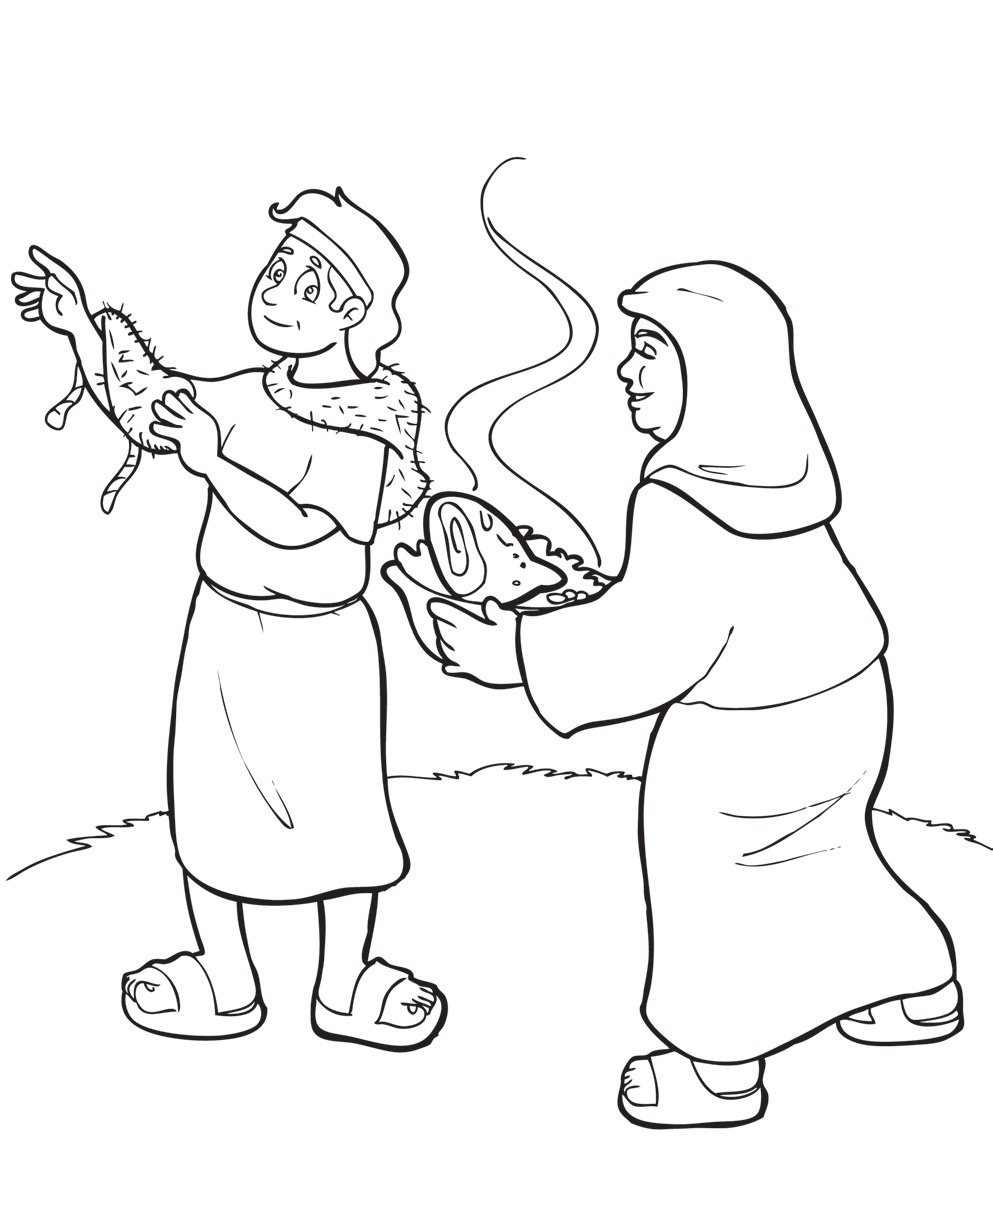 993x1225 Jacob And Esau Coloring Pages Printable Image Throughout